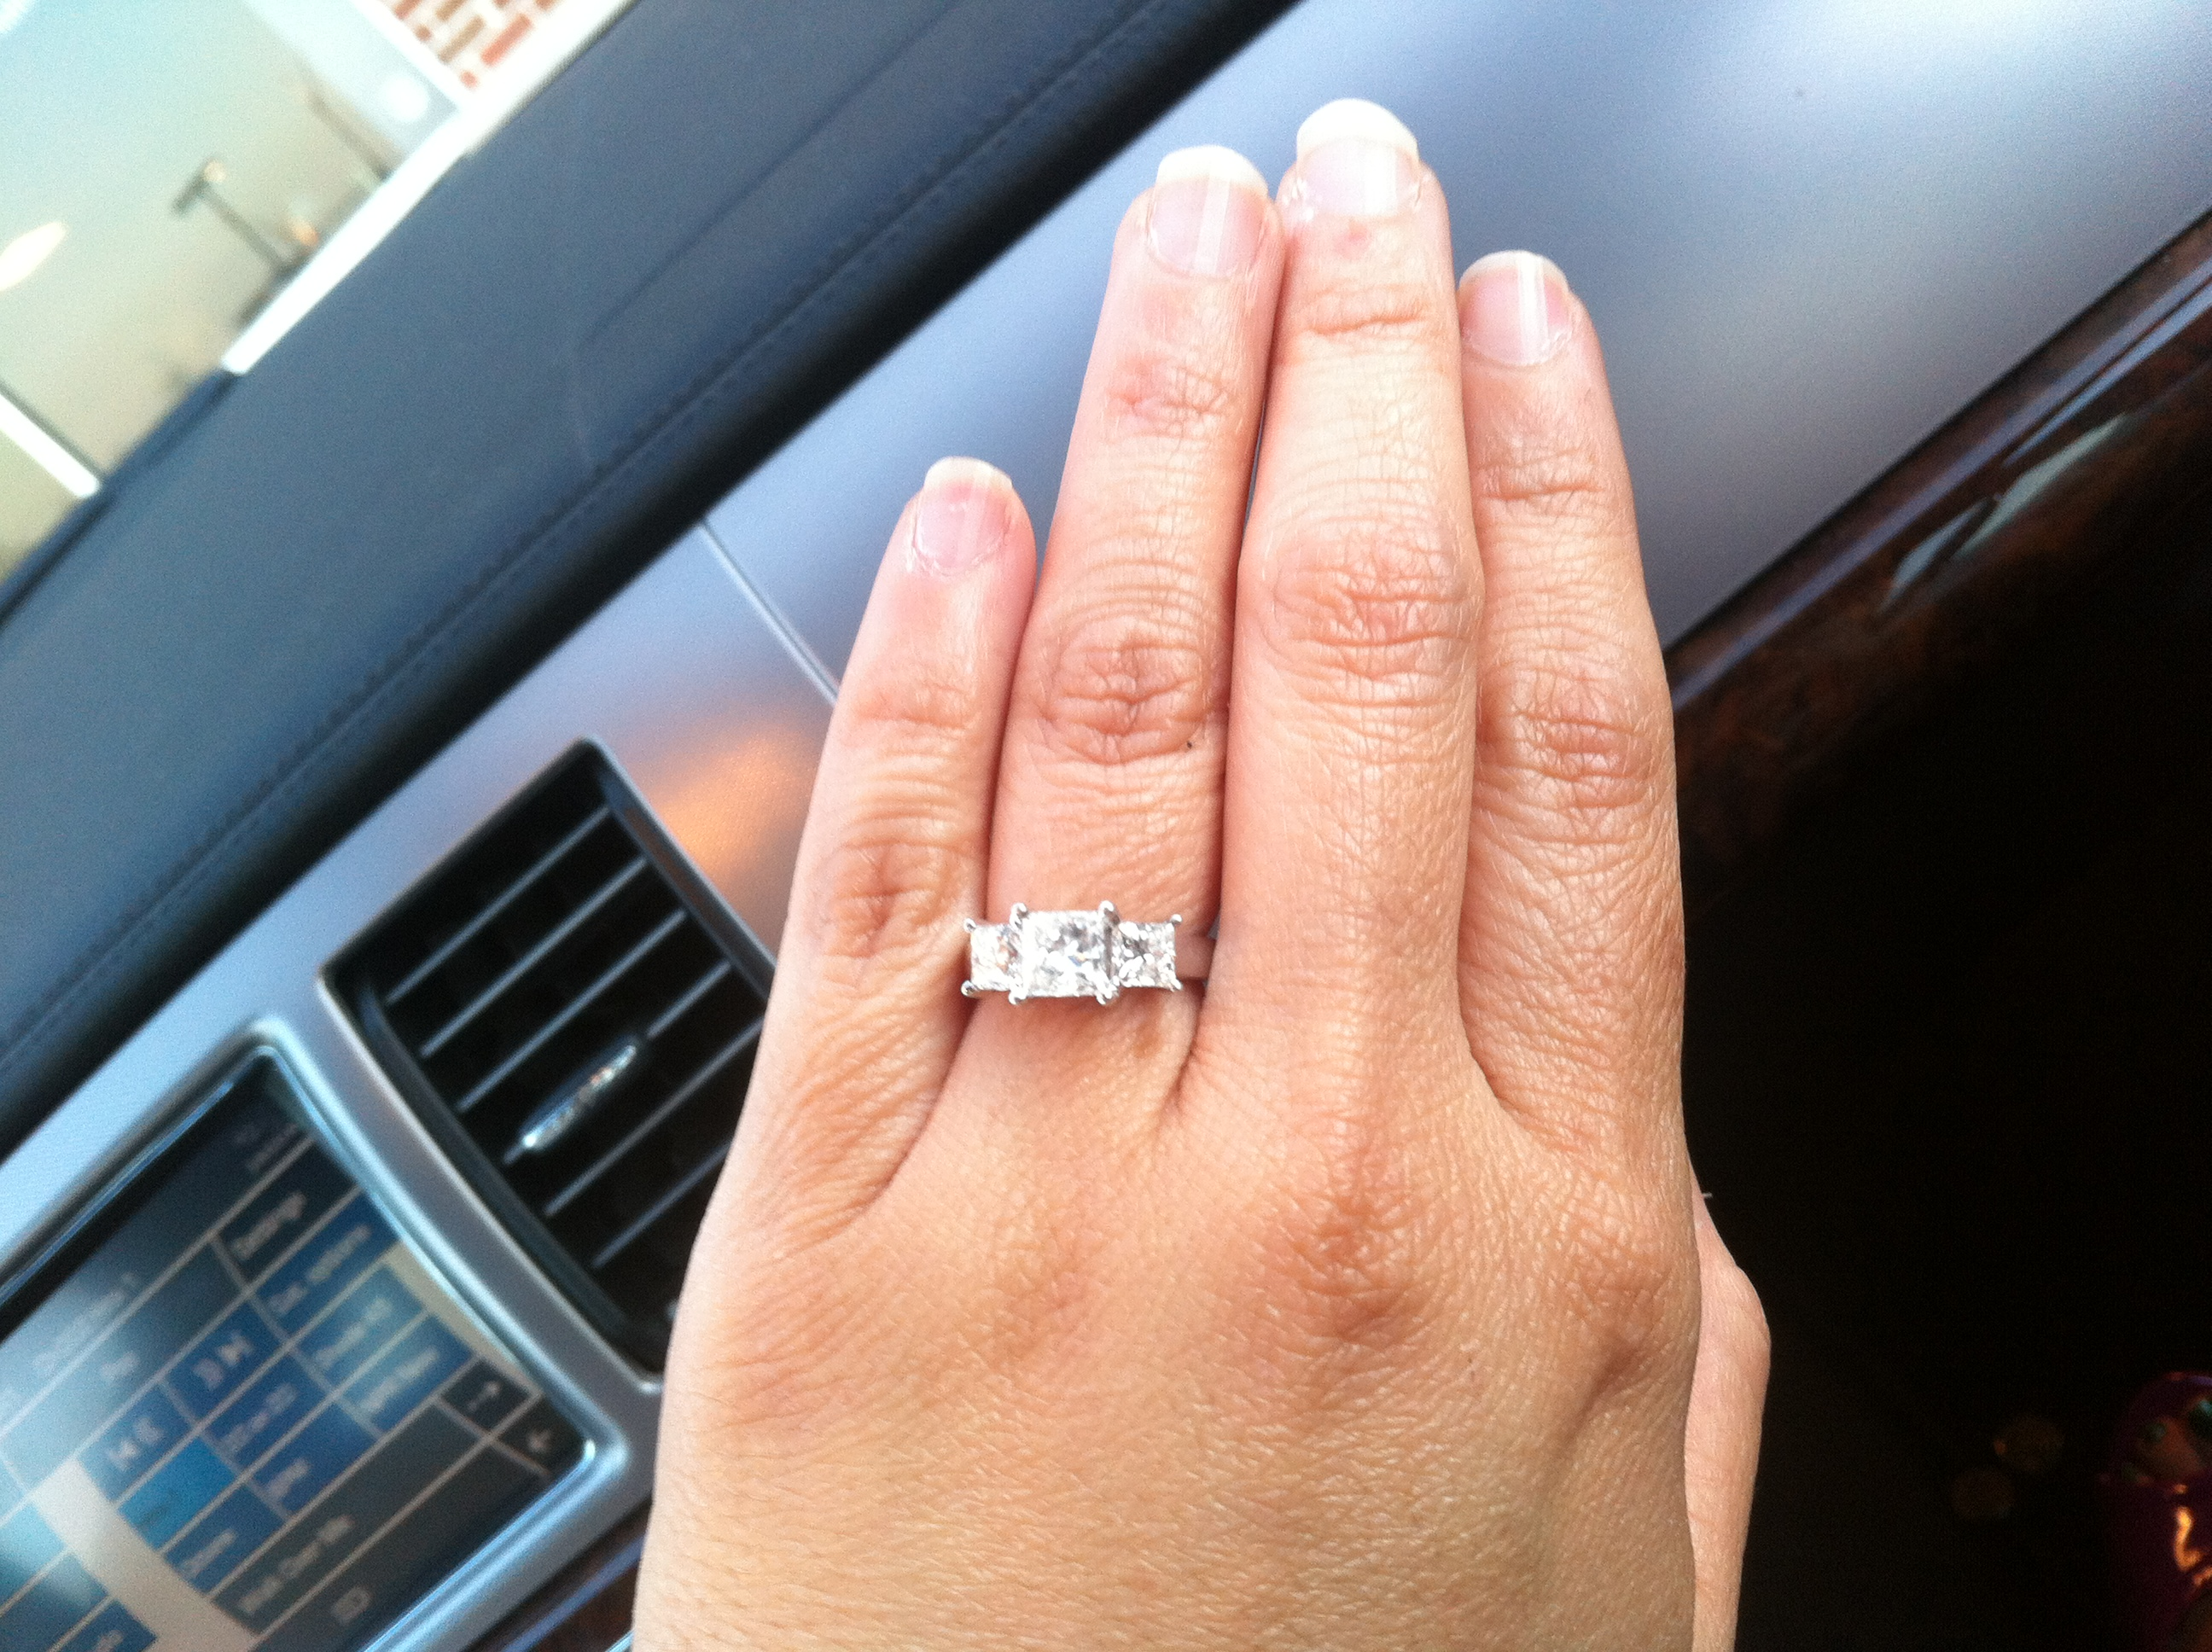 engagement rings and wedding bands - what is a reasonable price